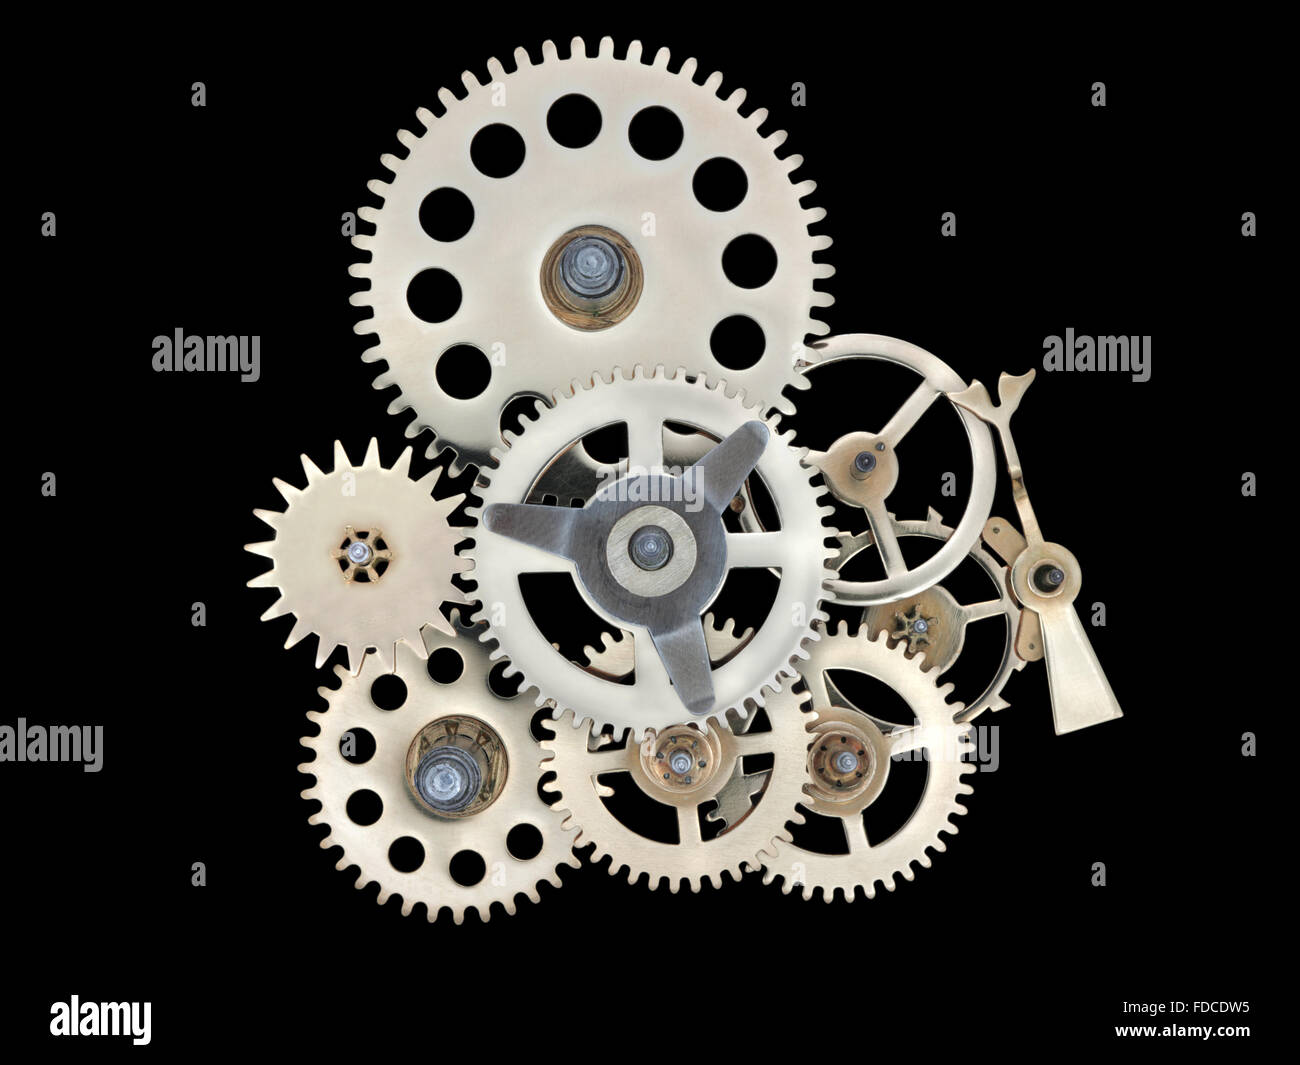 Closeup of gears from clock works. - Stock Image